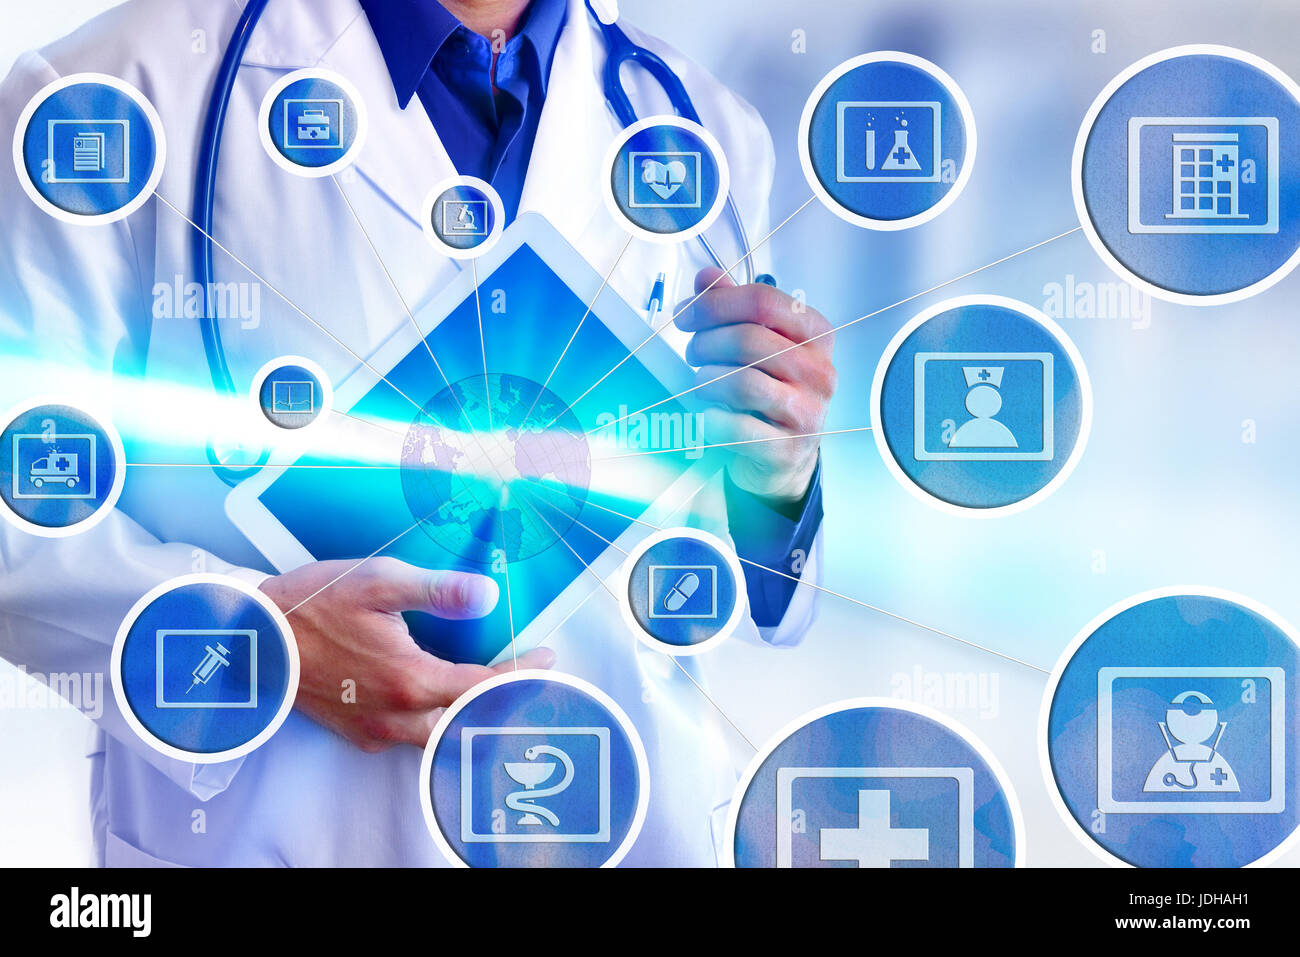 Representation communication fields of medicine and globalization online with doctor picking up white tablet - Stock Image